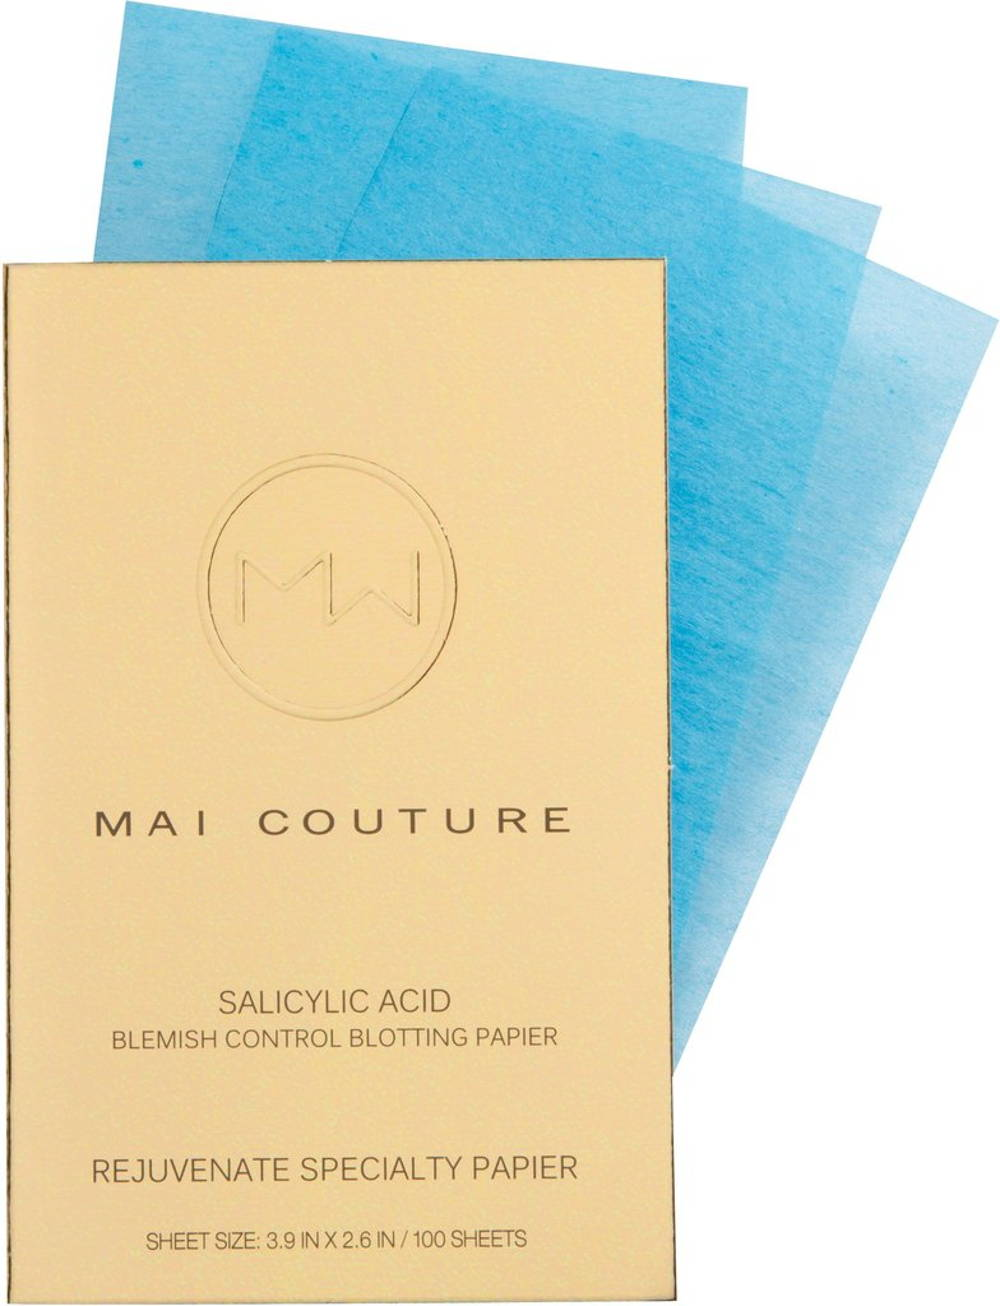 Mai couture salicylic acid paper